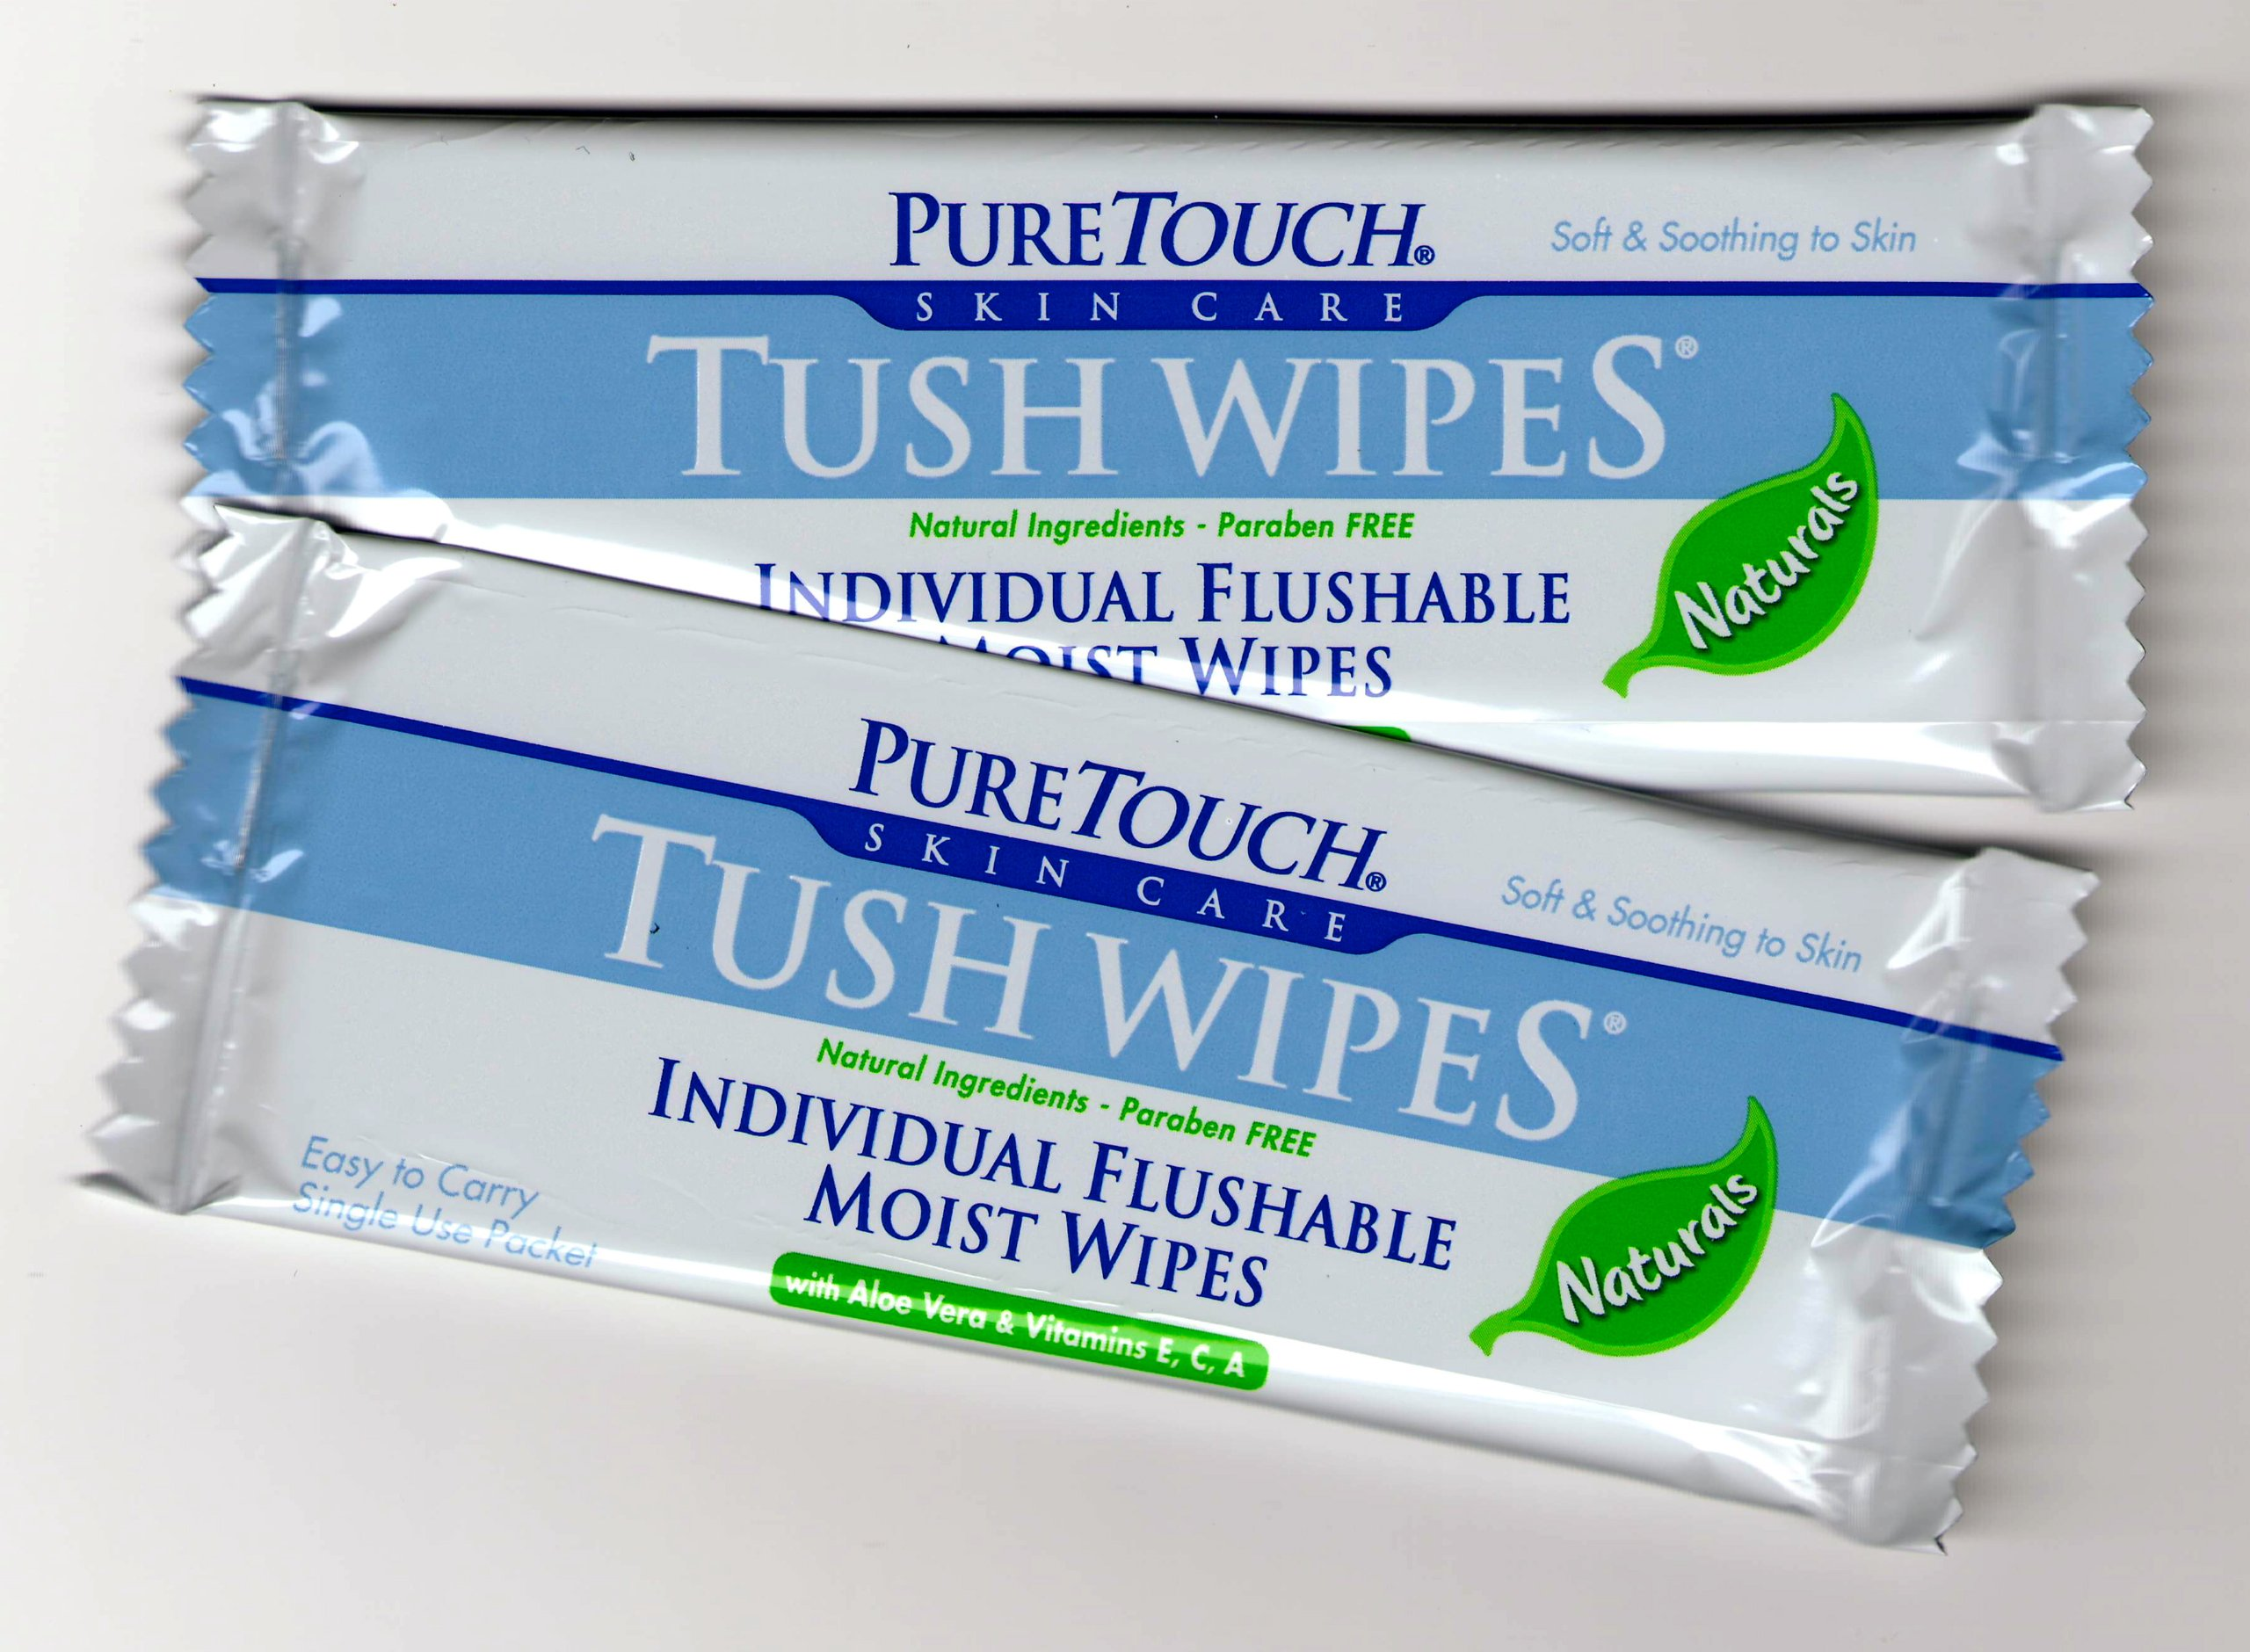 PureTouch Tush Wipes NATURALS for adults Individual Flushable Moist Wipes Bulk of 350 Single-Use-Packets by PureTouch